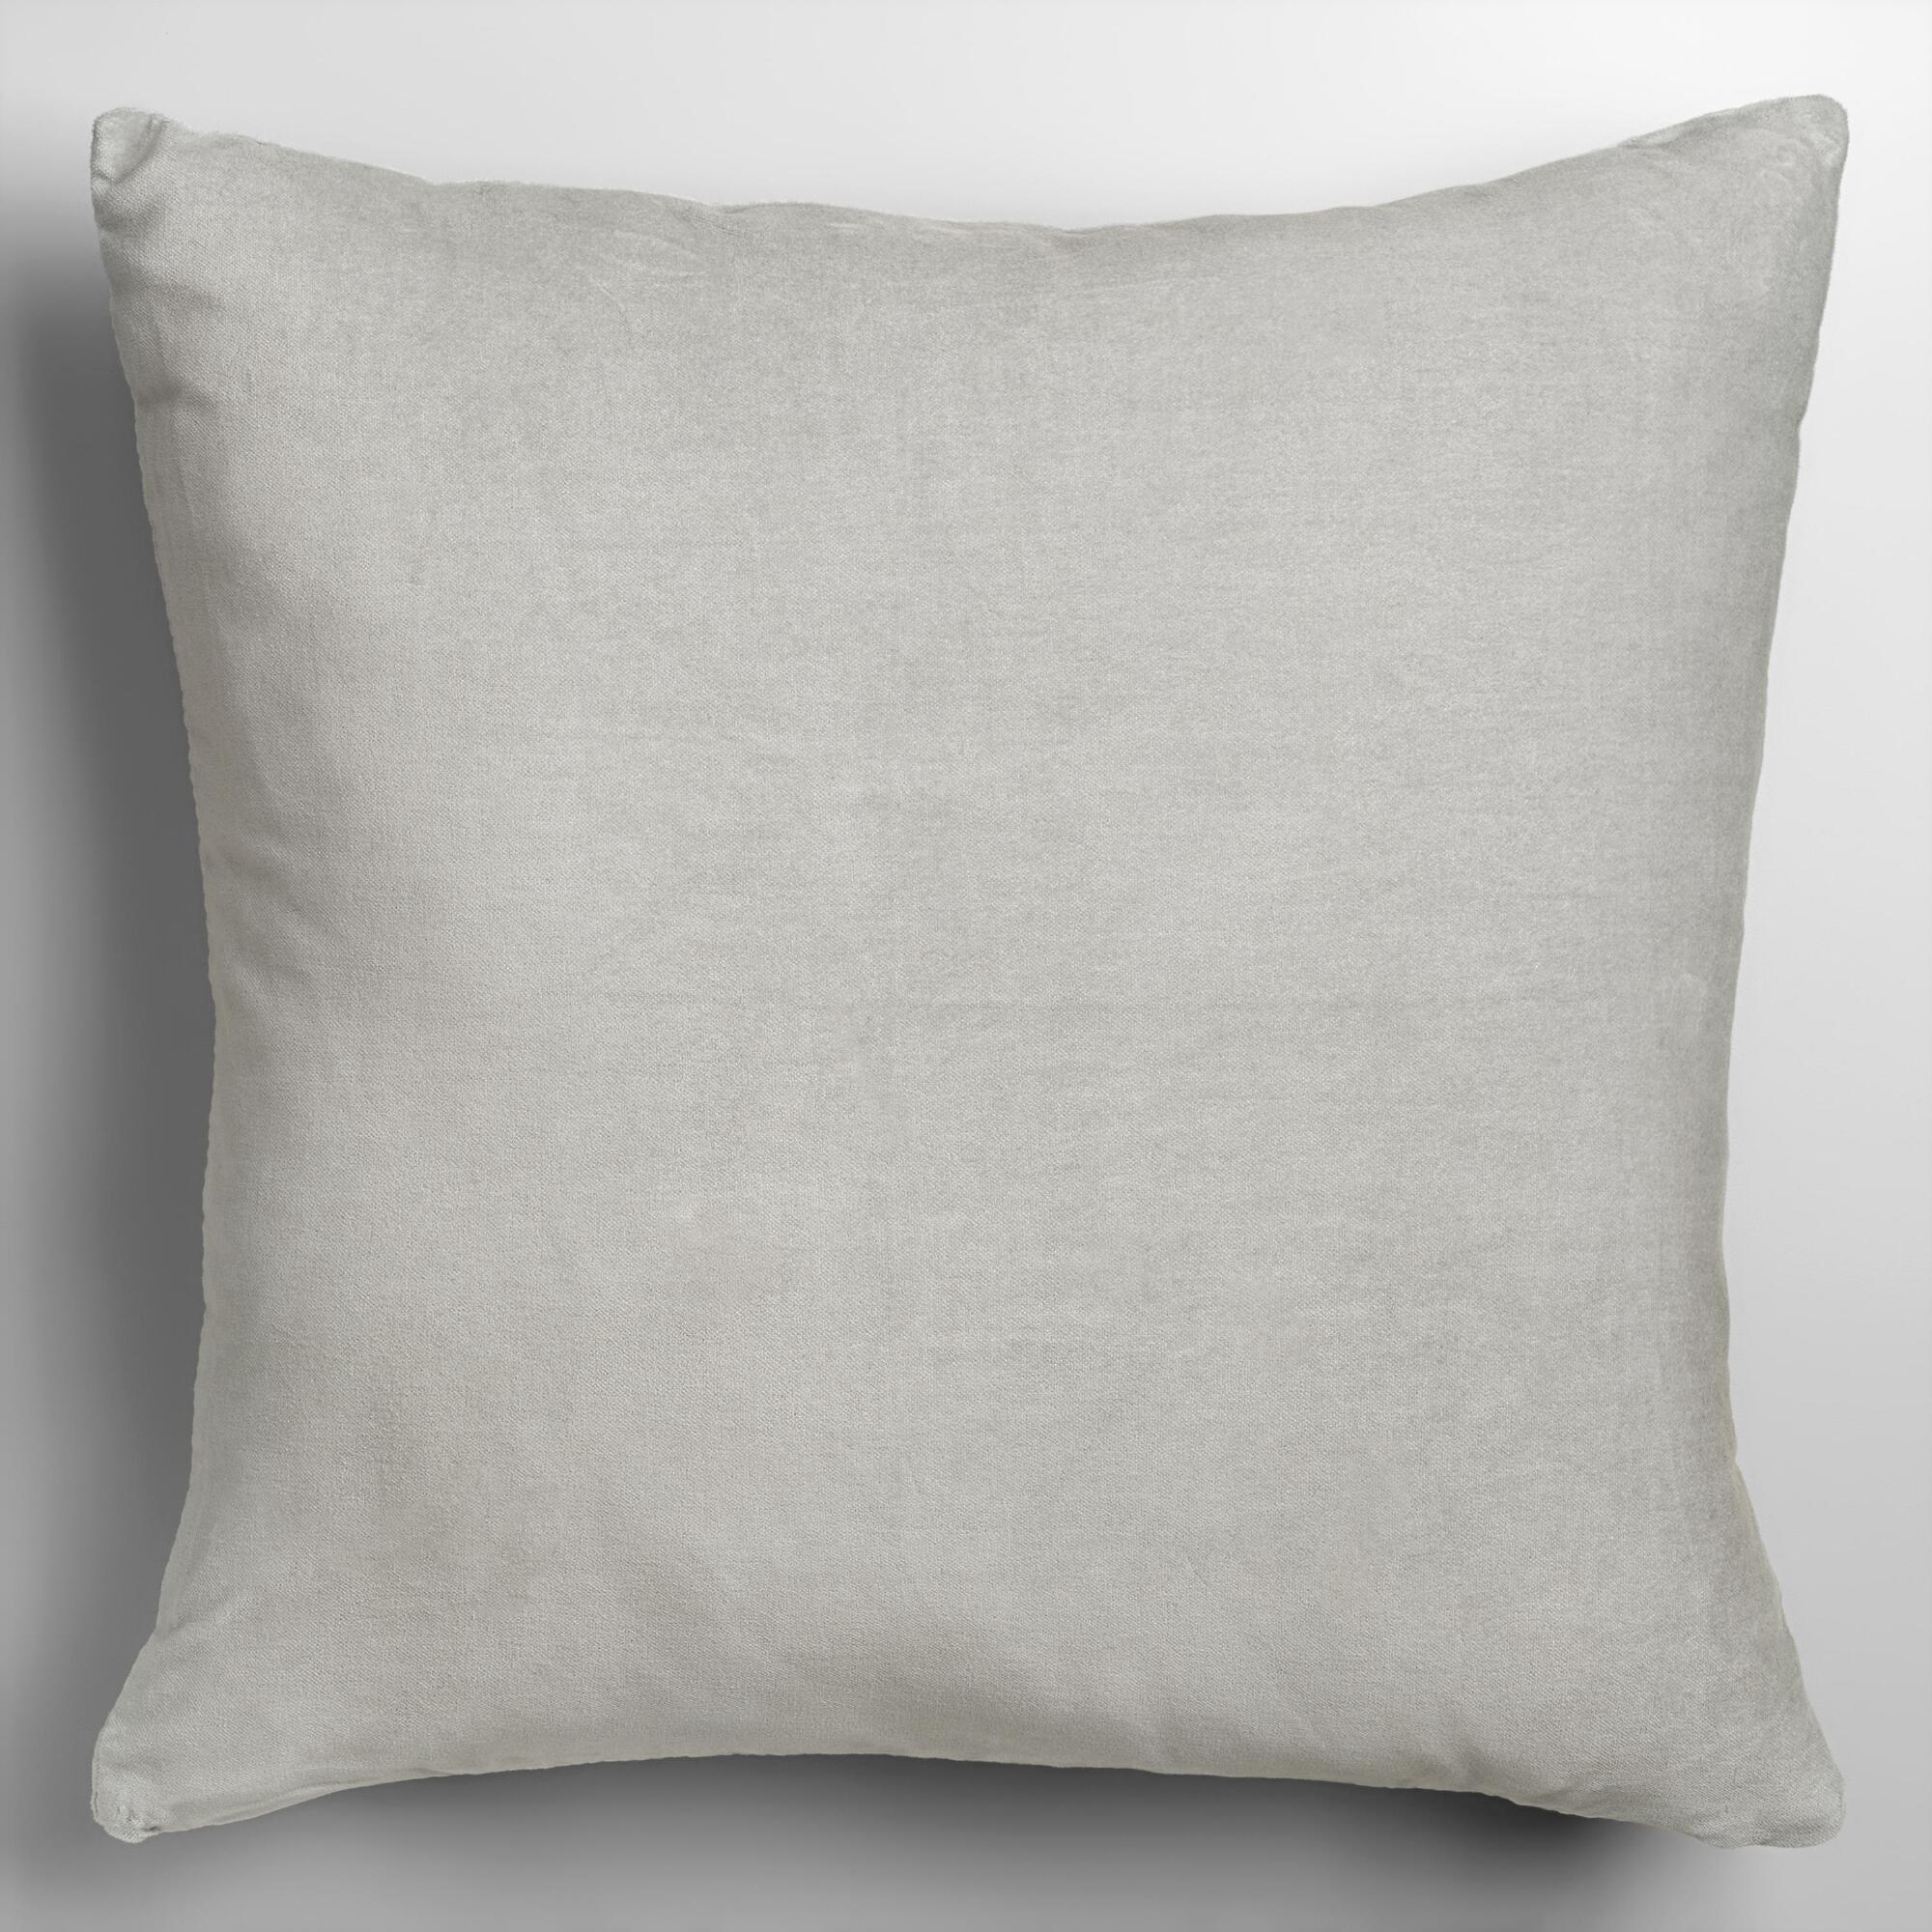 Throw Pillows Velvet : Mirage Gray Velvet Throw Pillow World Market